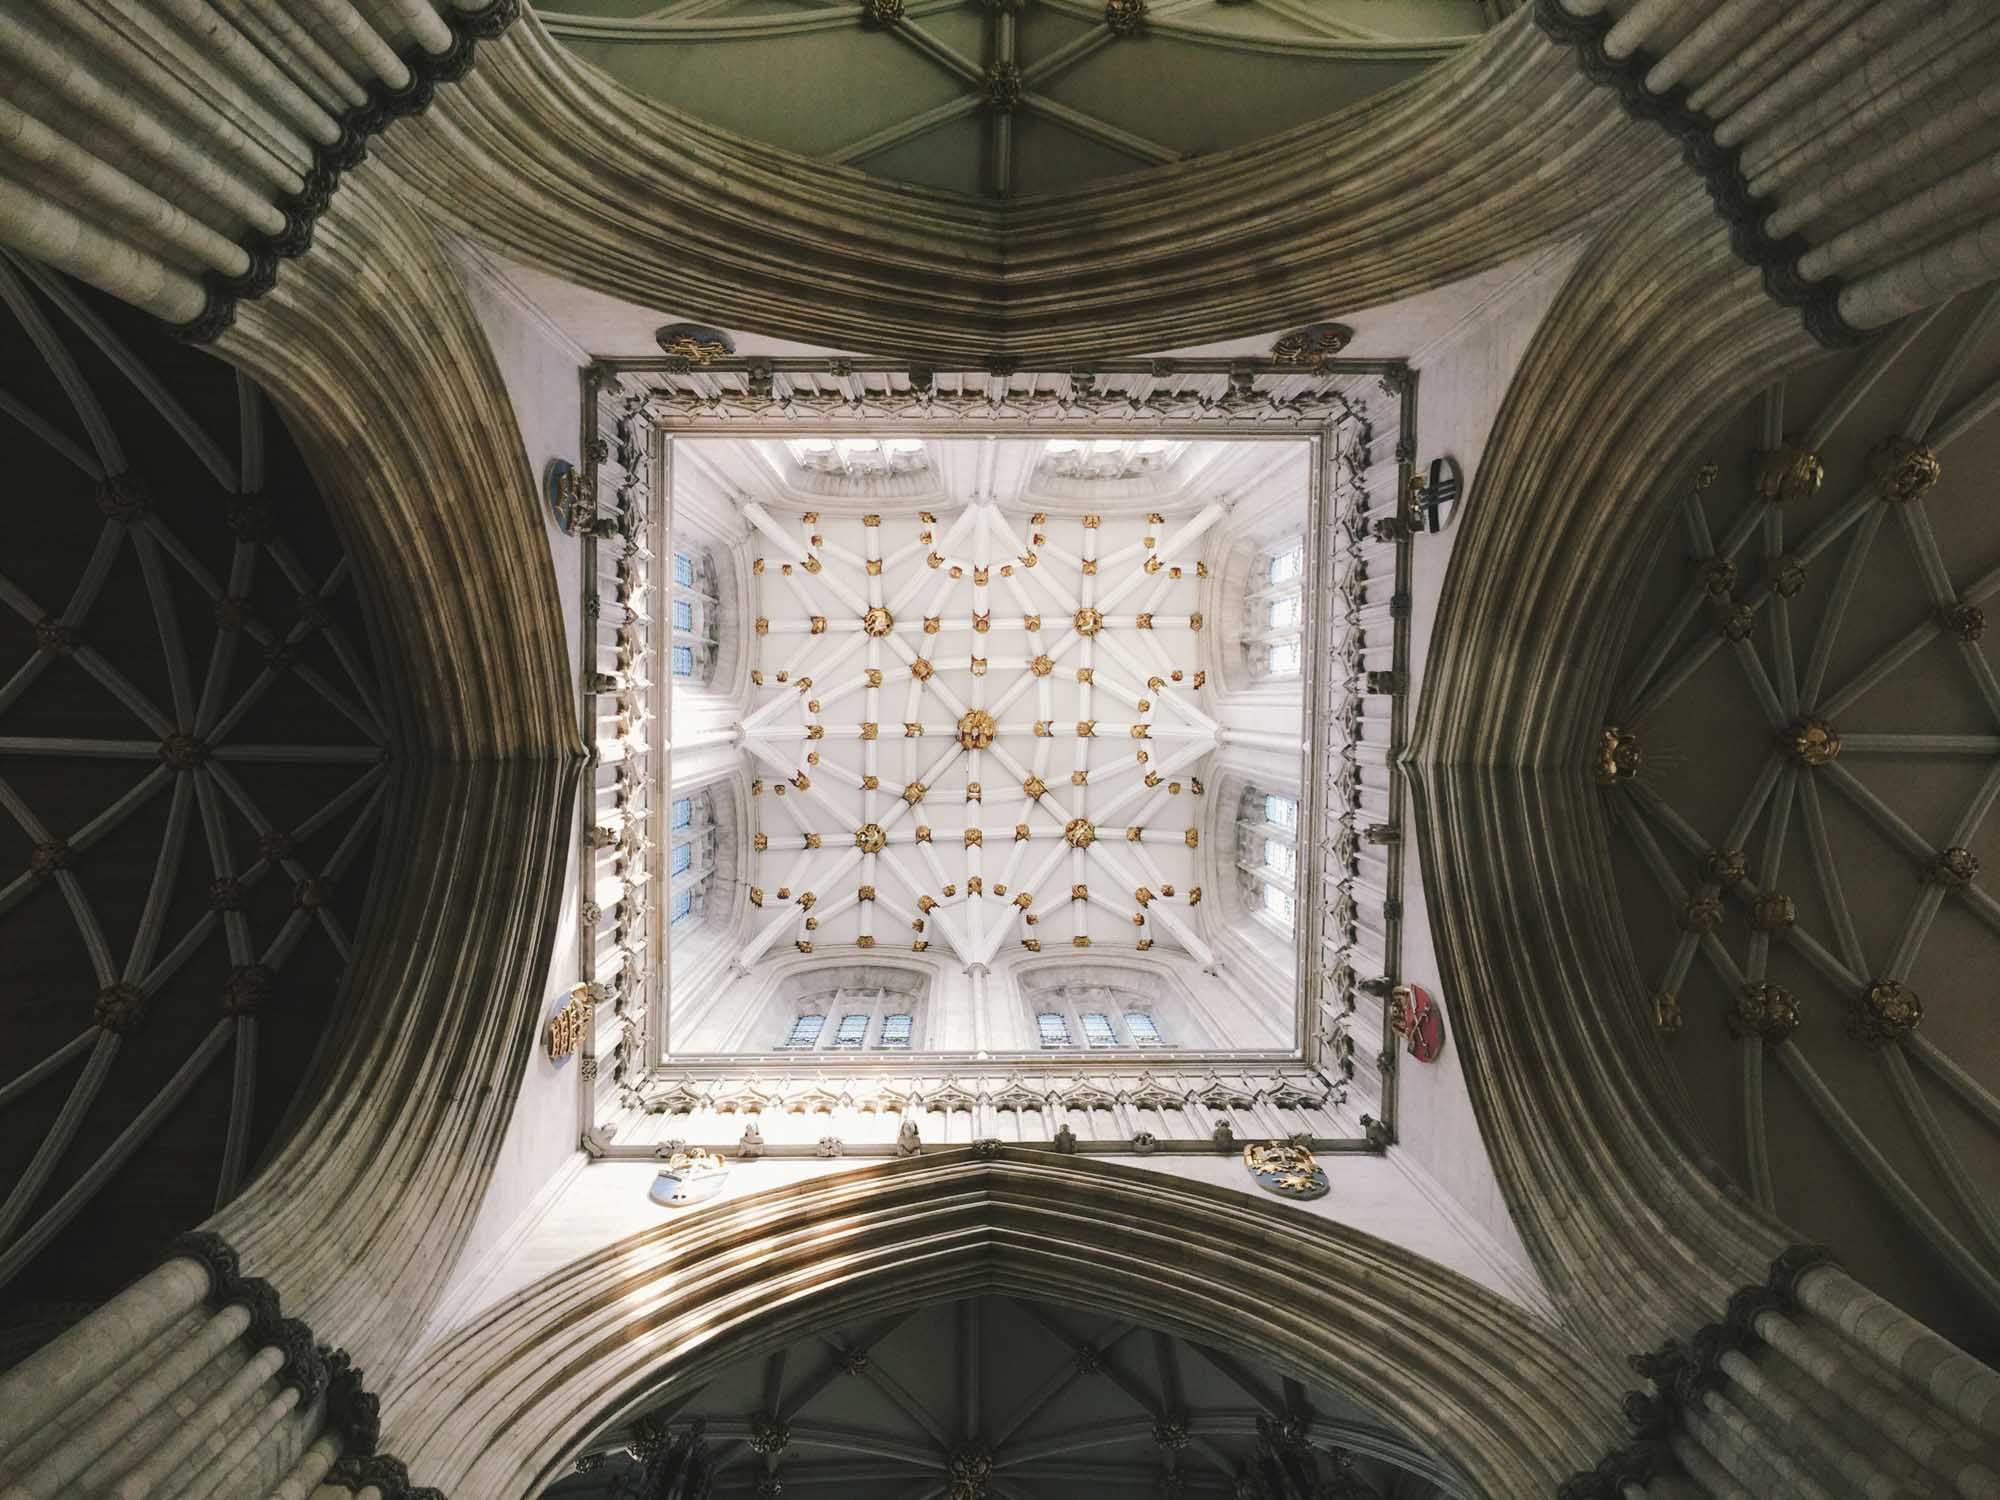 Best things to do in York - York Minster